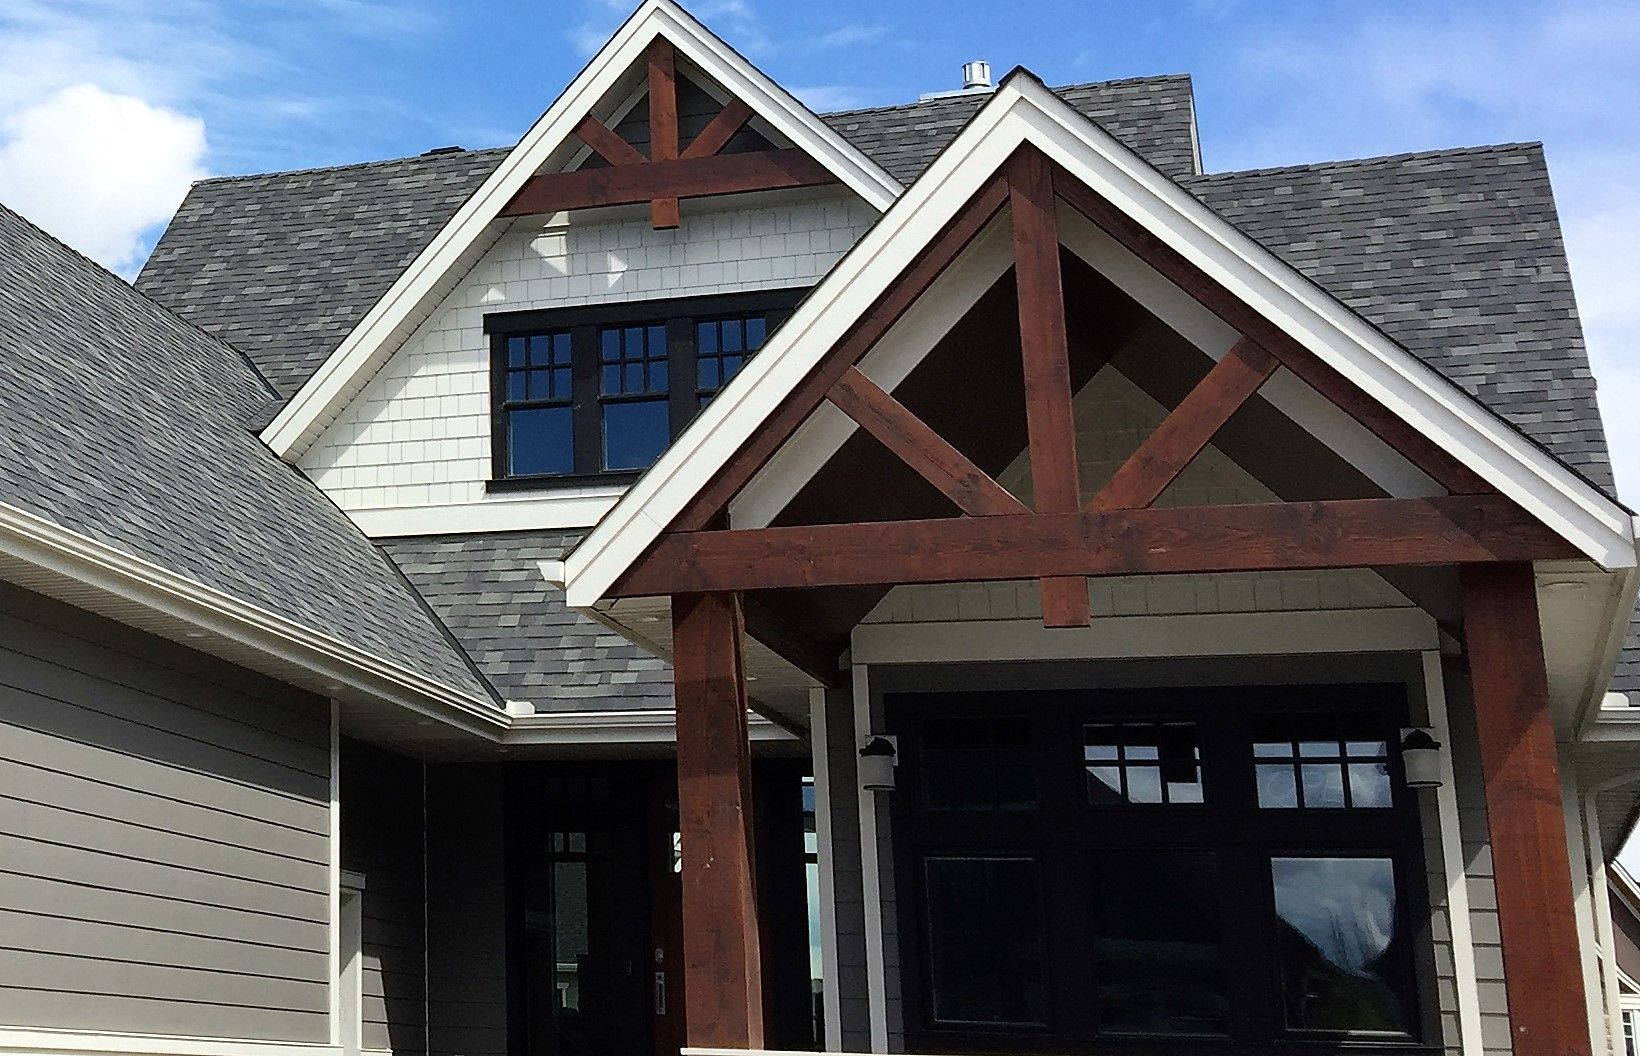 Timber frame trusses in open gable and front porch roof. #timber ...